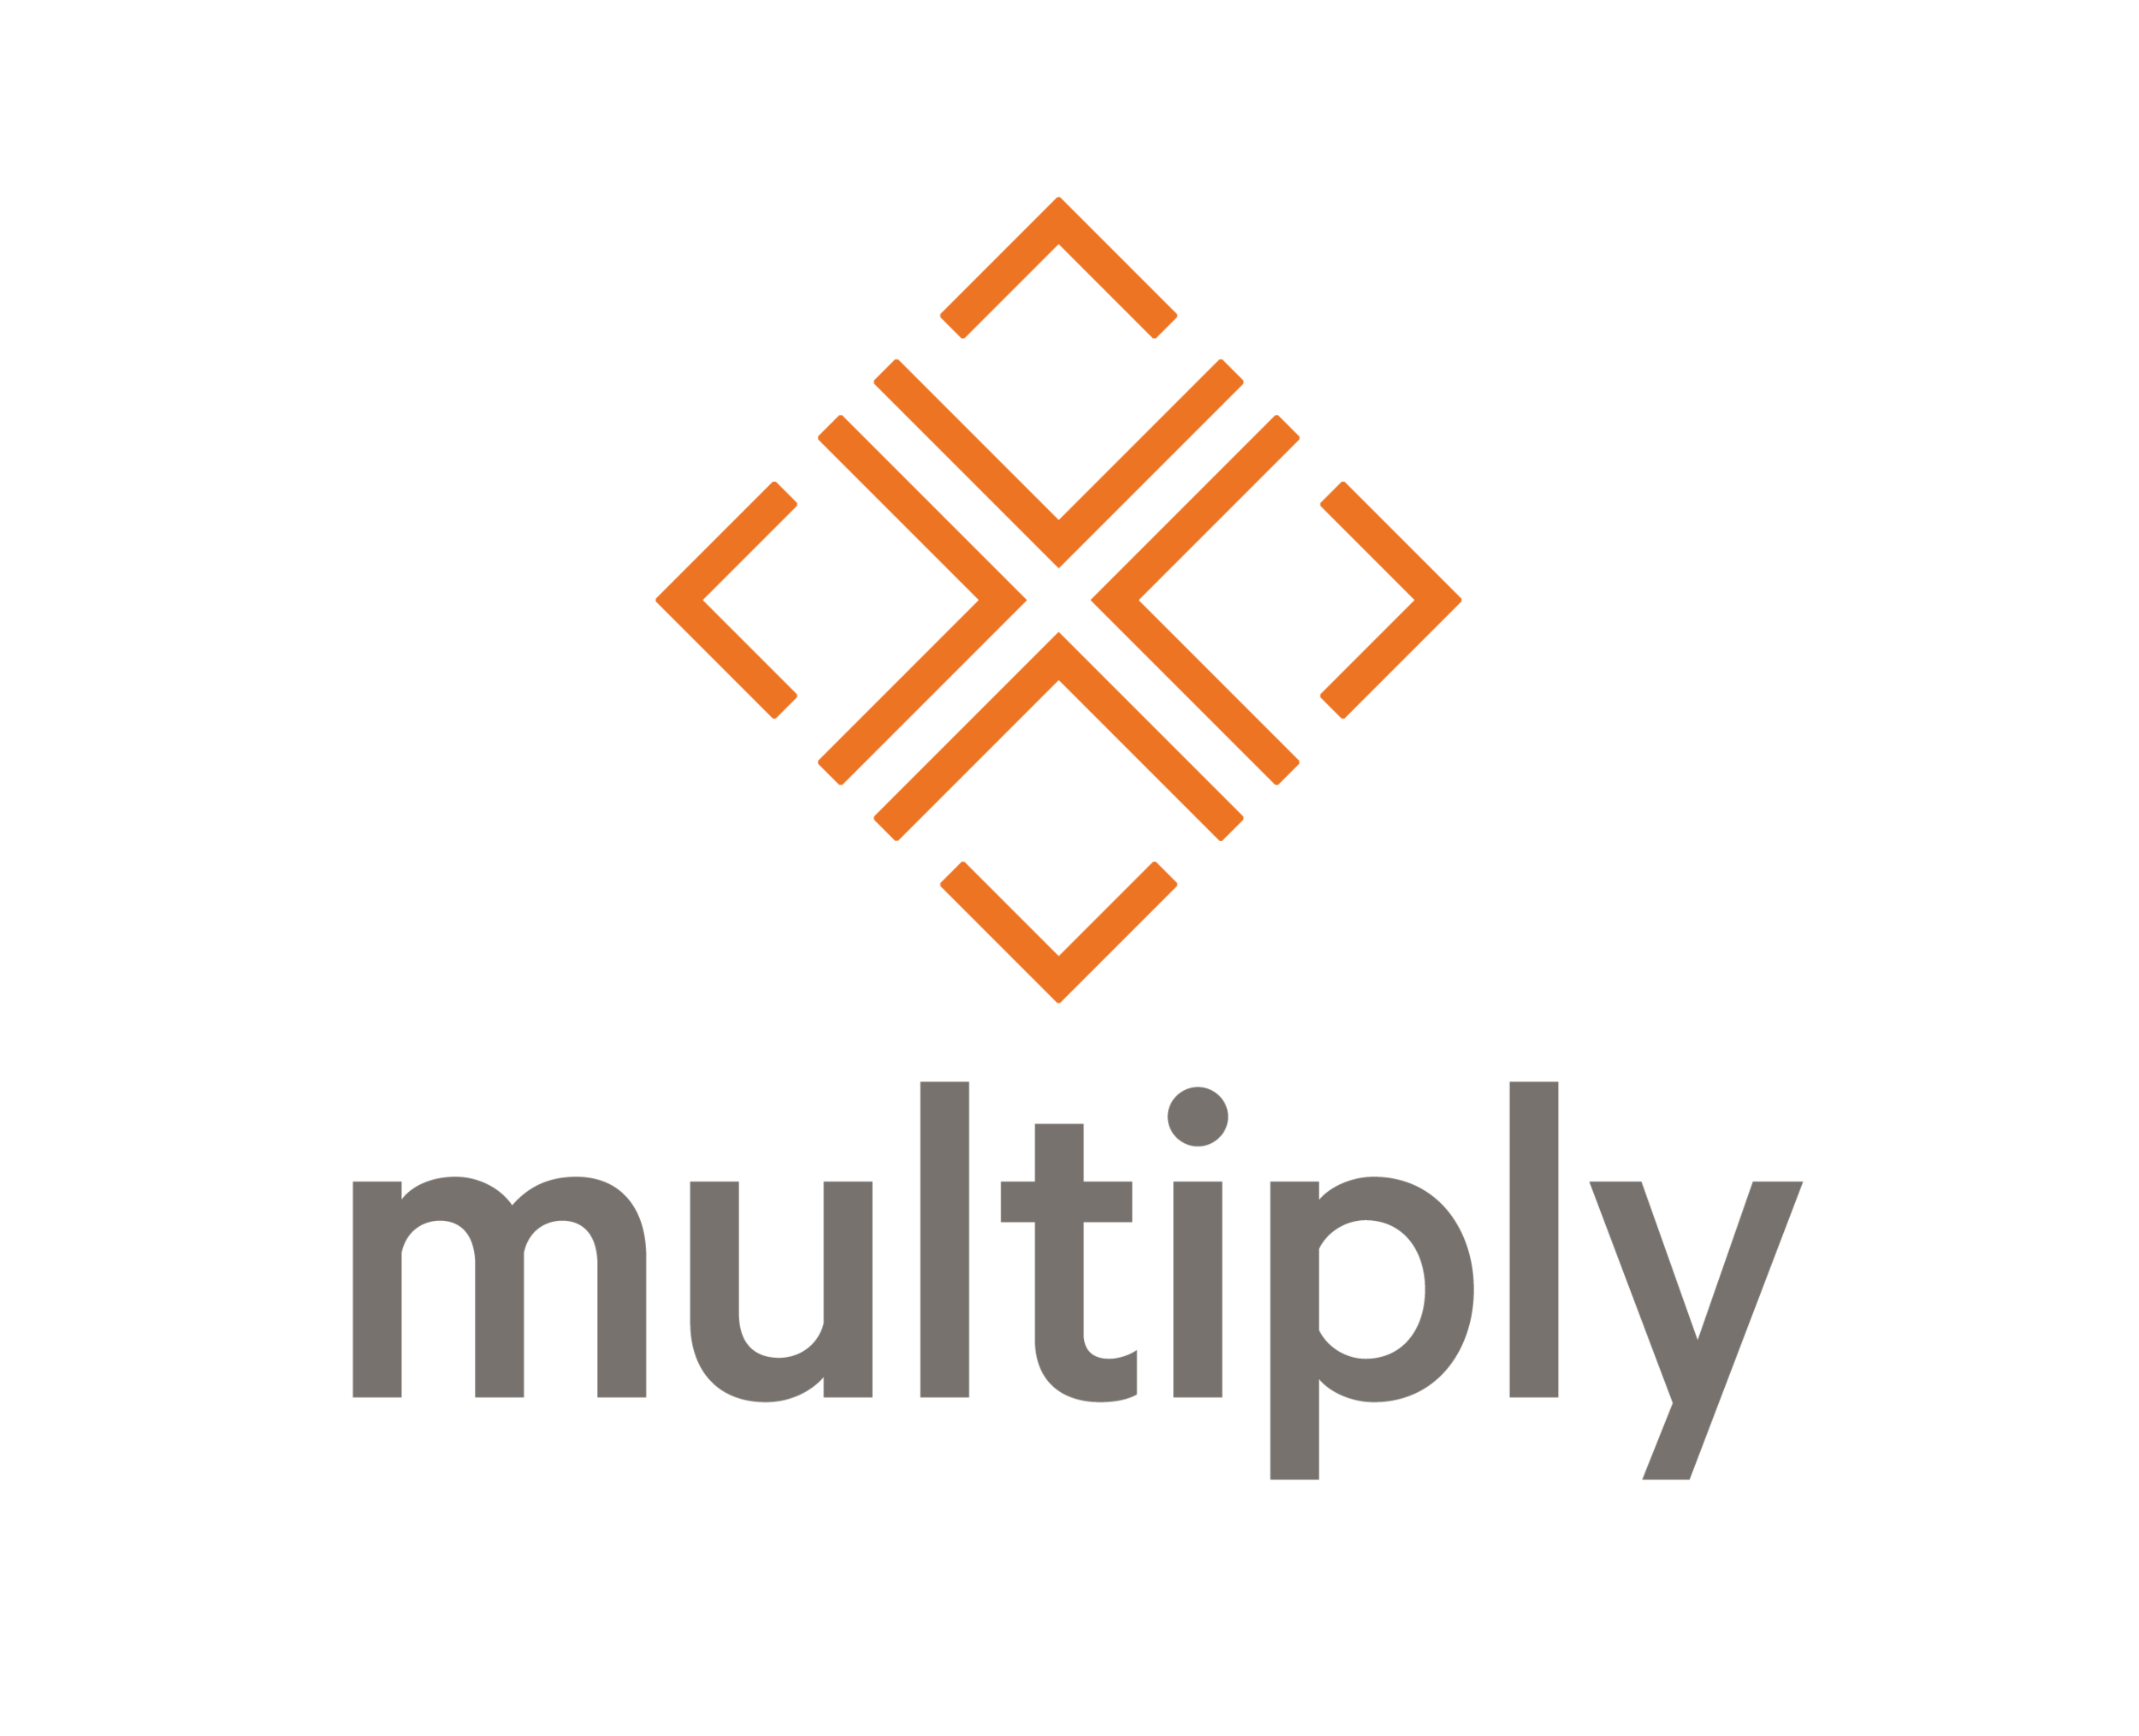 multiply_stack4x.png